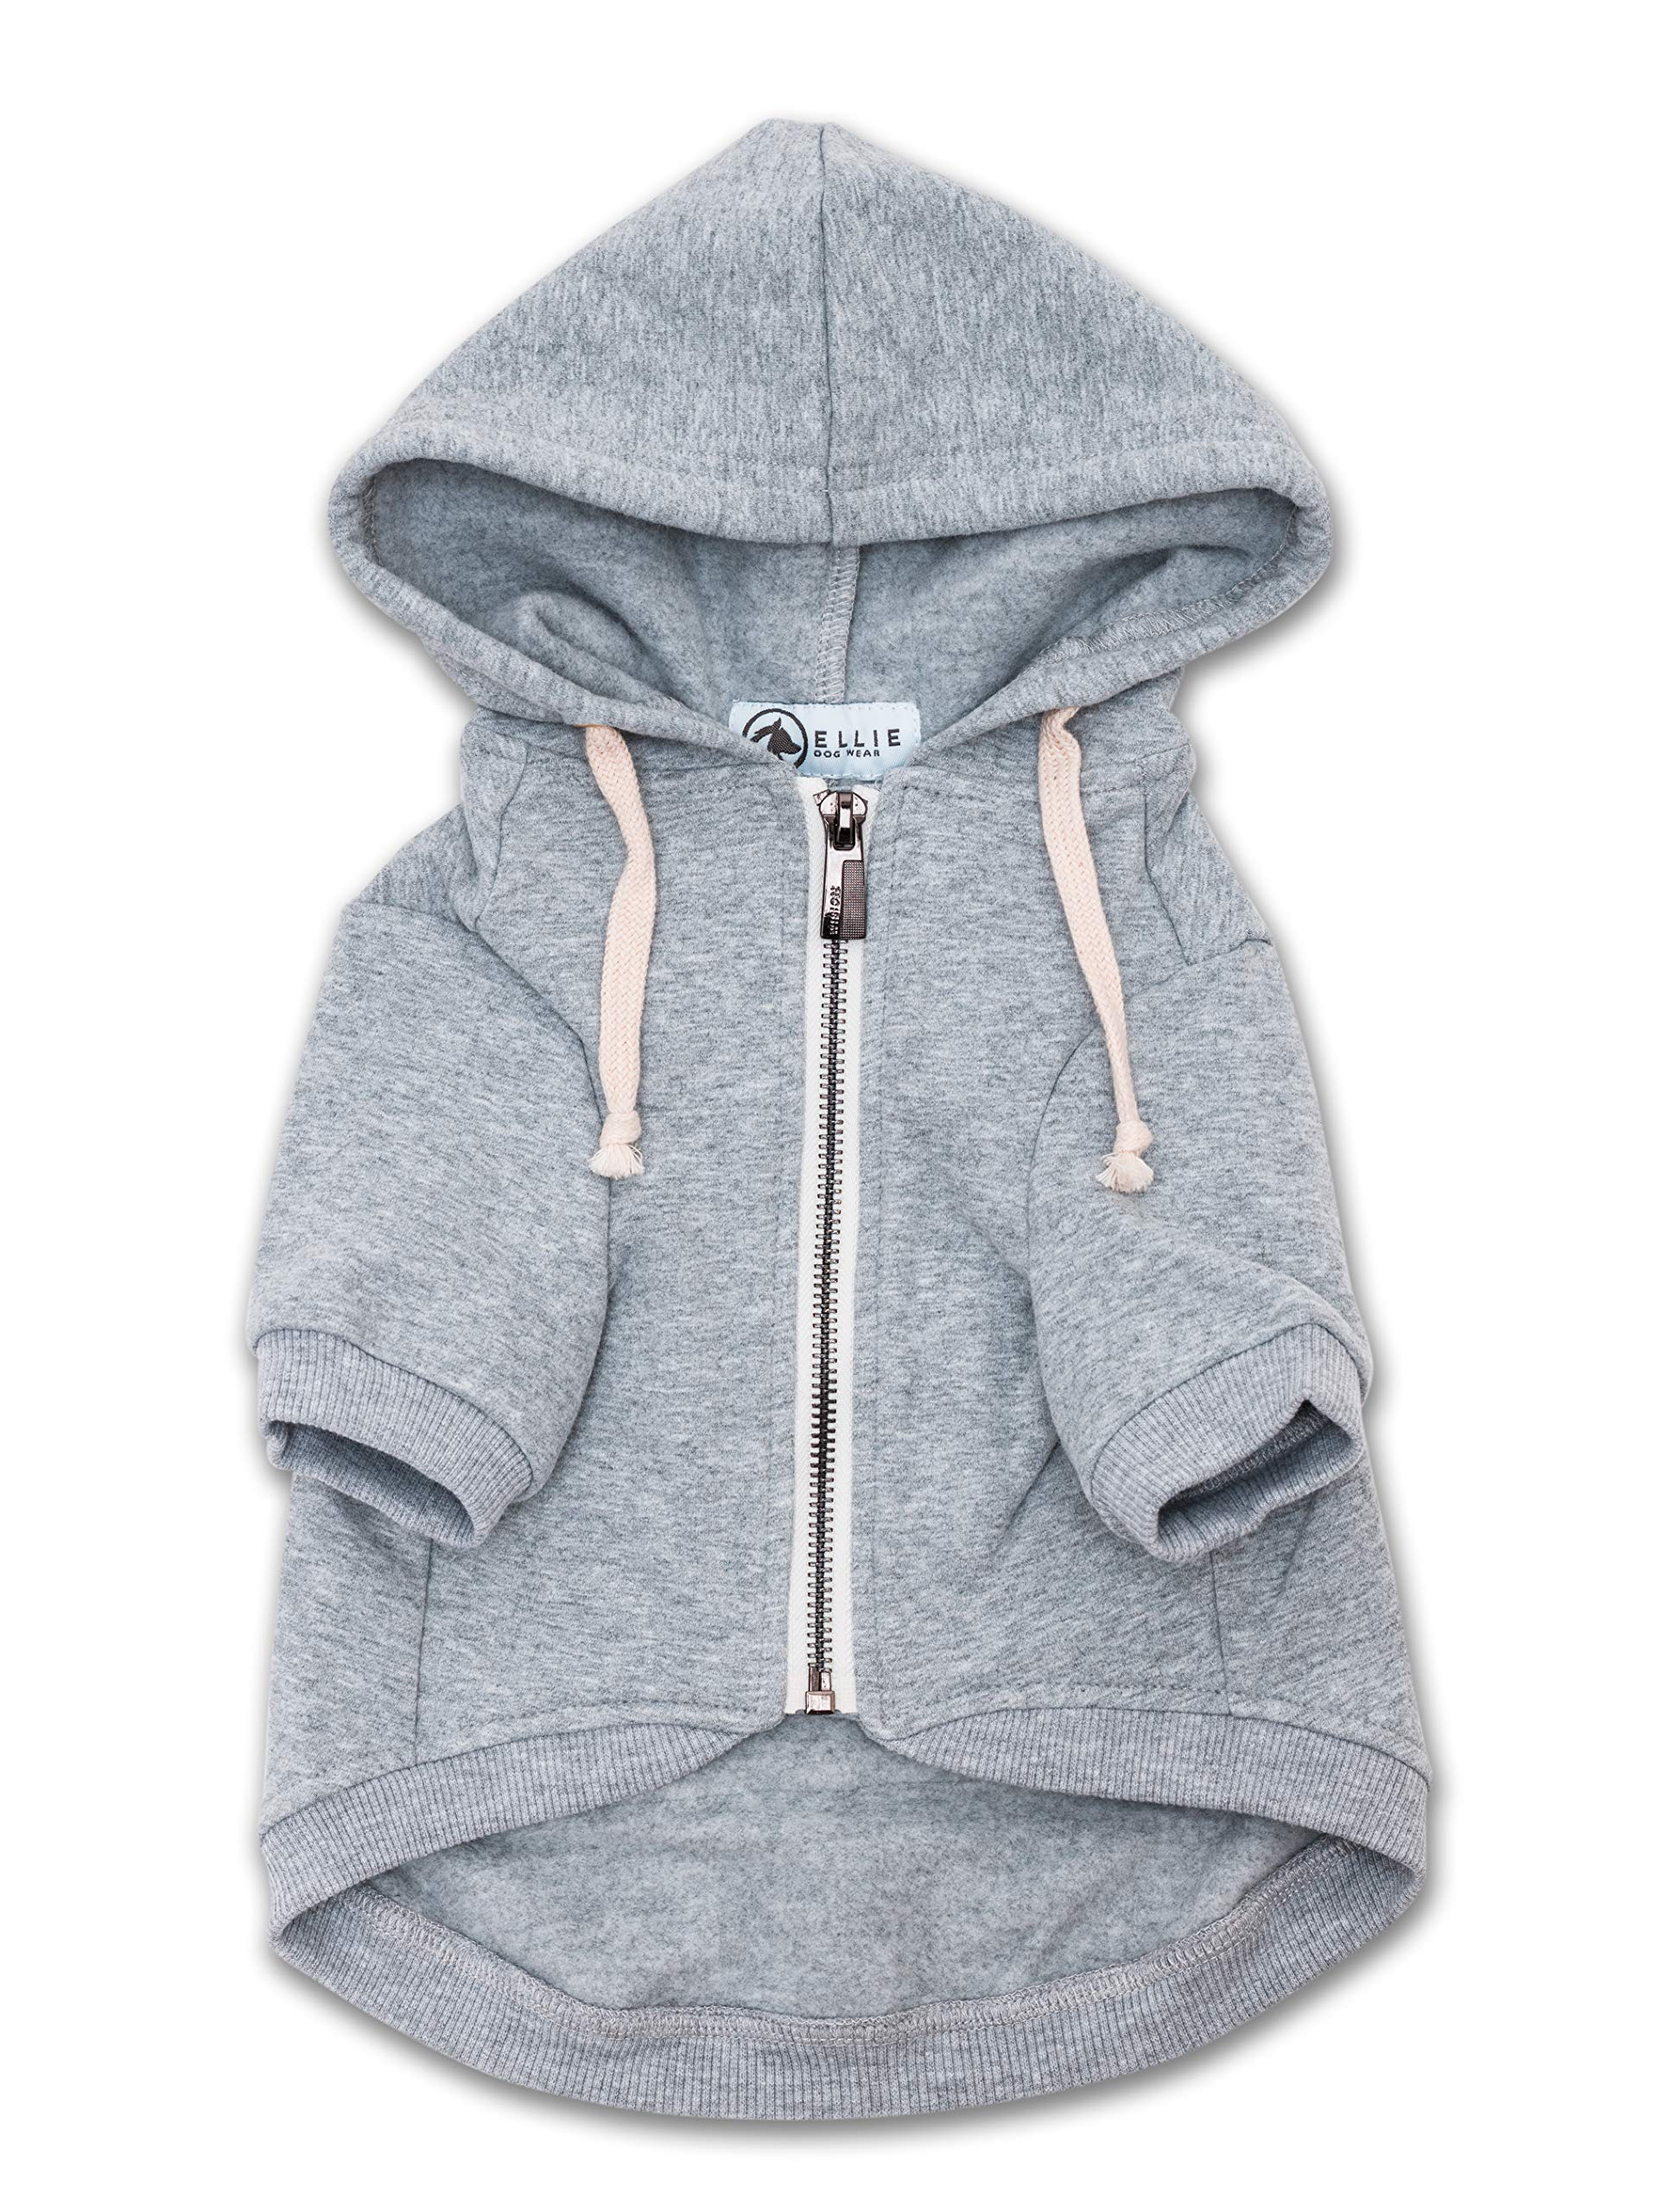 Ellie Dog Wear Zip Up Adventure Light Grey Dog Hoodie with Hook & Loop Pockets and Adjustable Drawstring Hood - Available in Extra Small to Extra Large. Comfortable & Versatile Dog Hoodies (M)